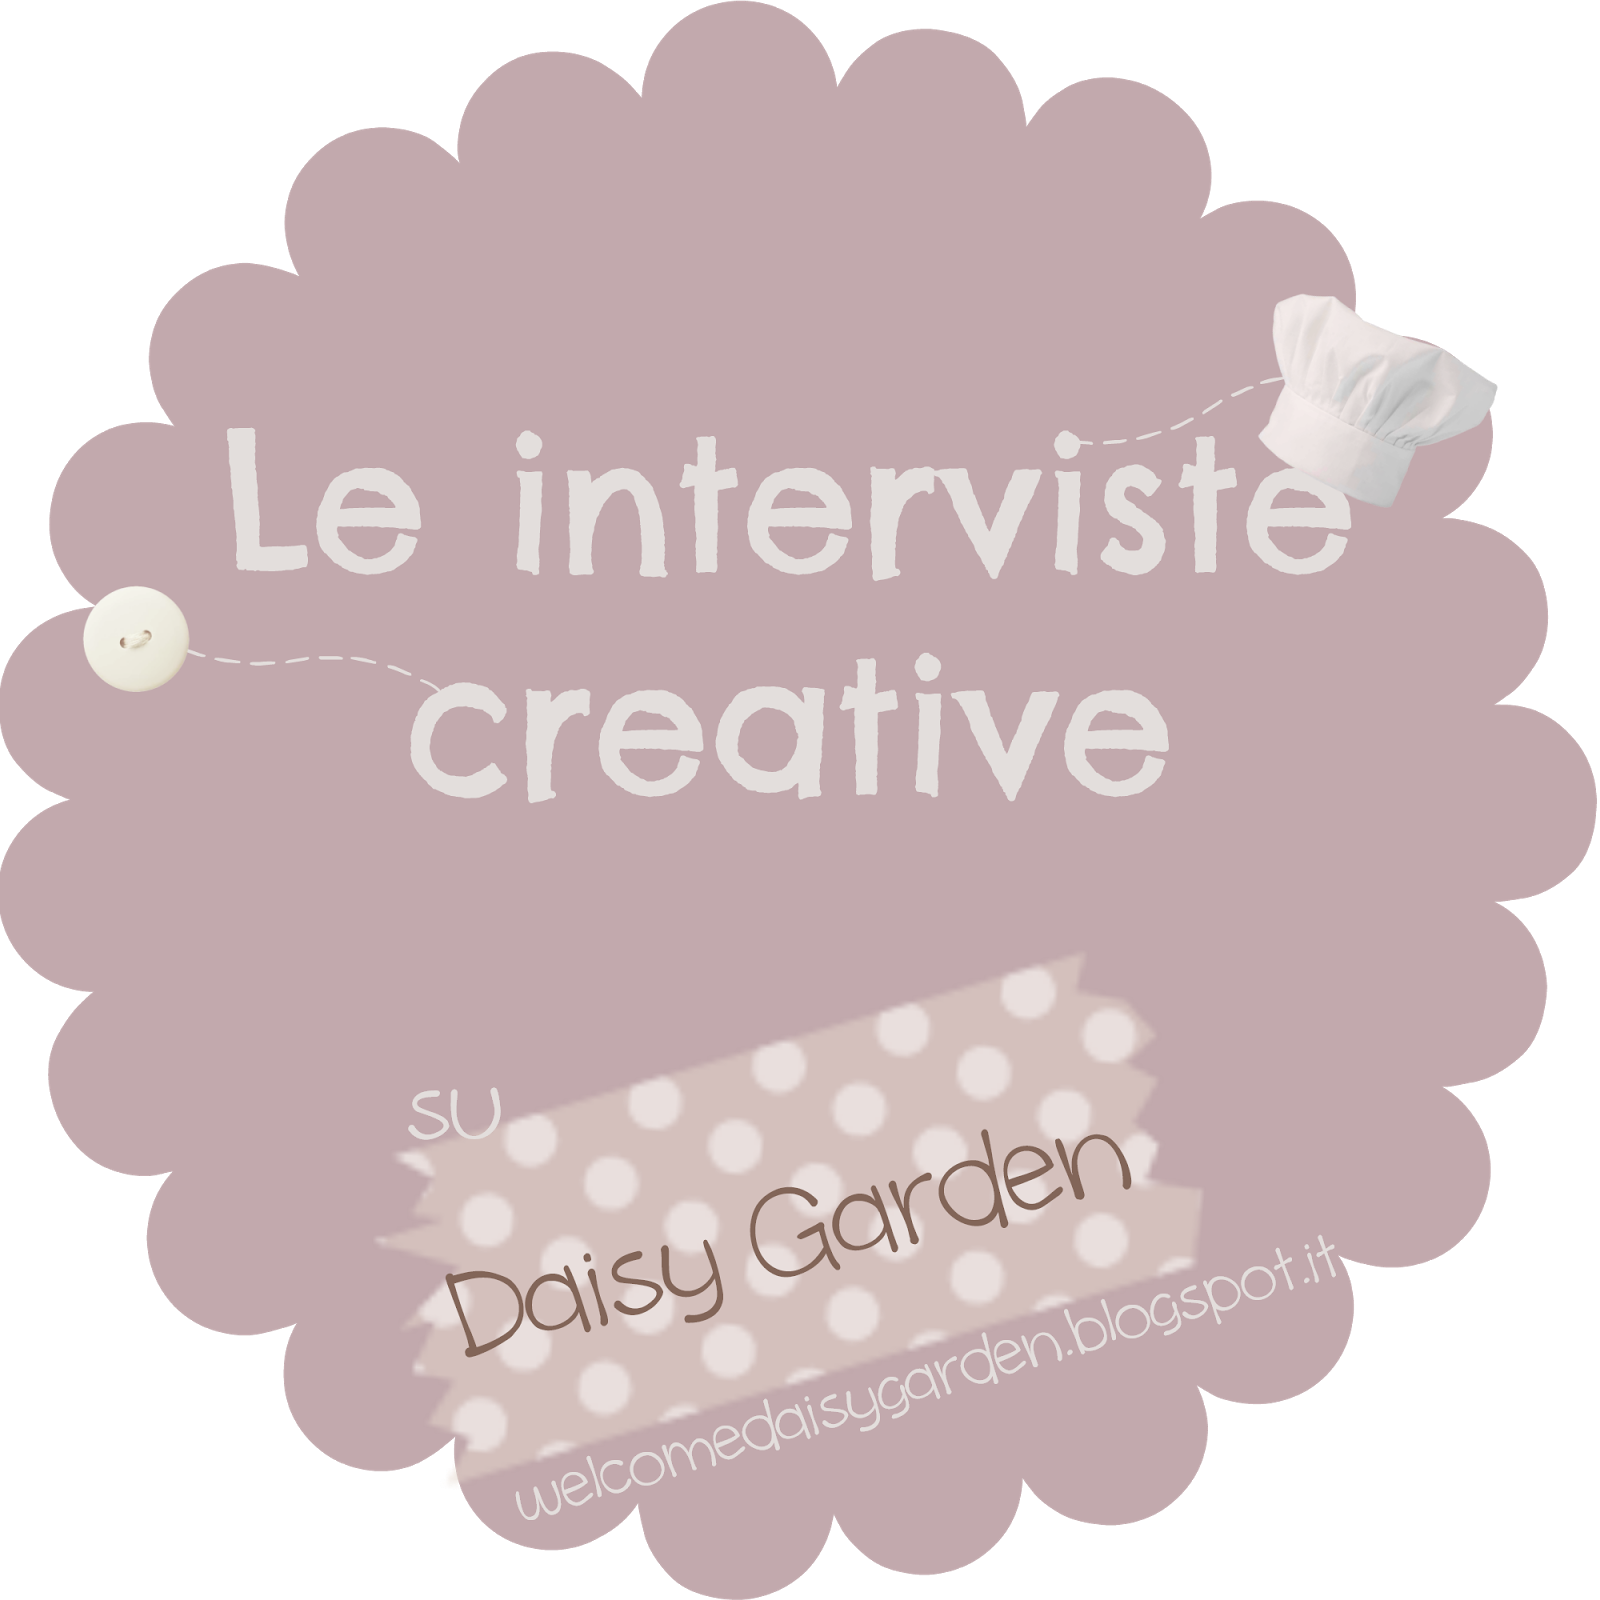 http://welcomedaisygarden.blogspot.it/2015/01/interviste-creative-selenyluna-di-cose-dell-altro-fimo.html?showComment=1421754955928#c6476131916419035603